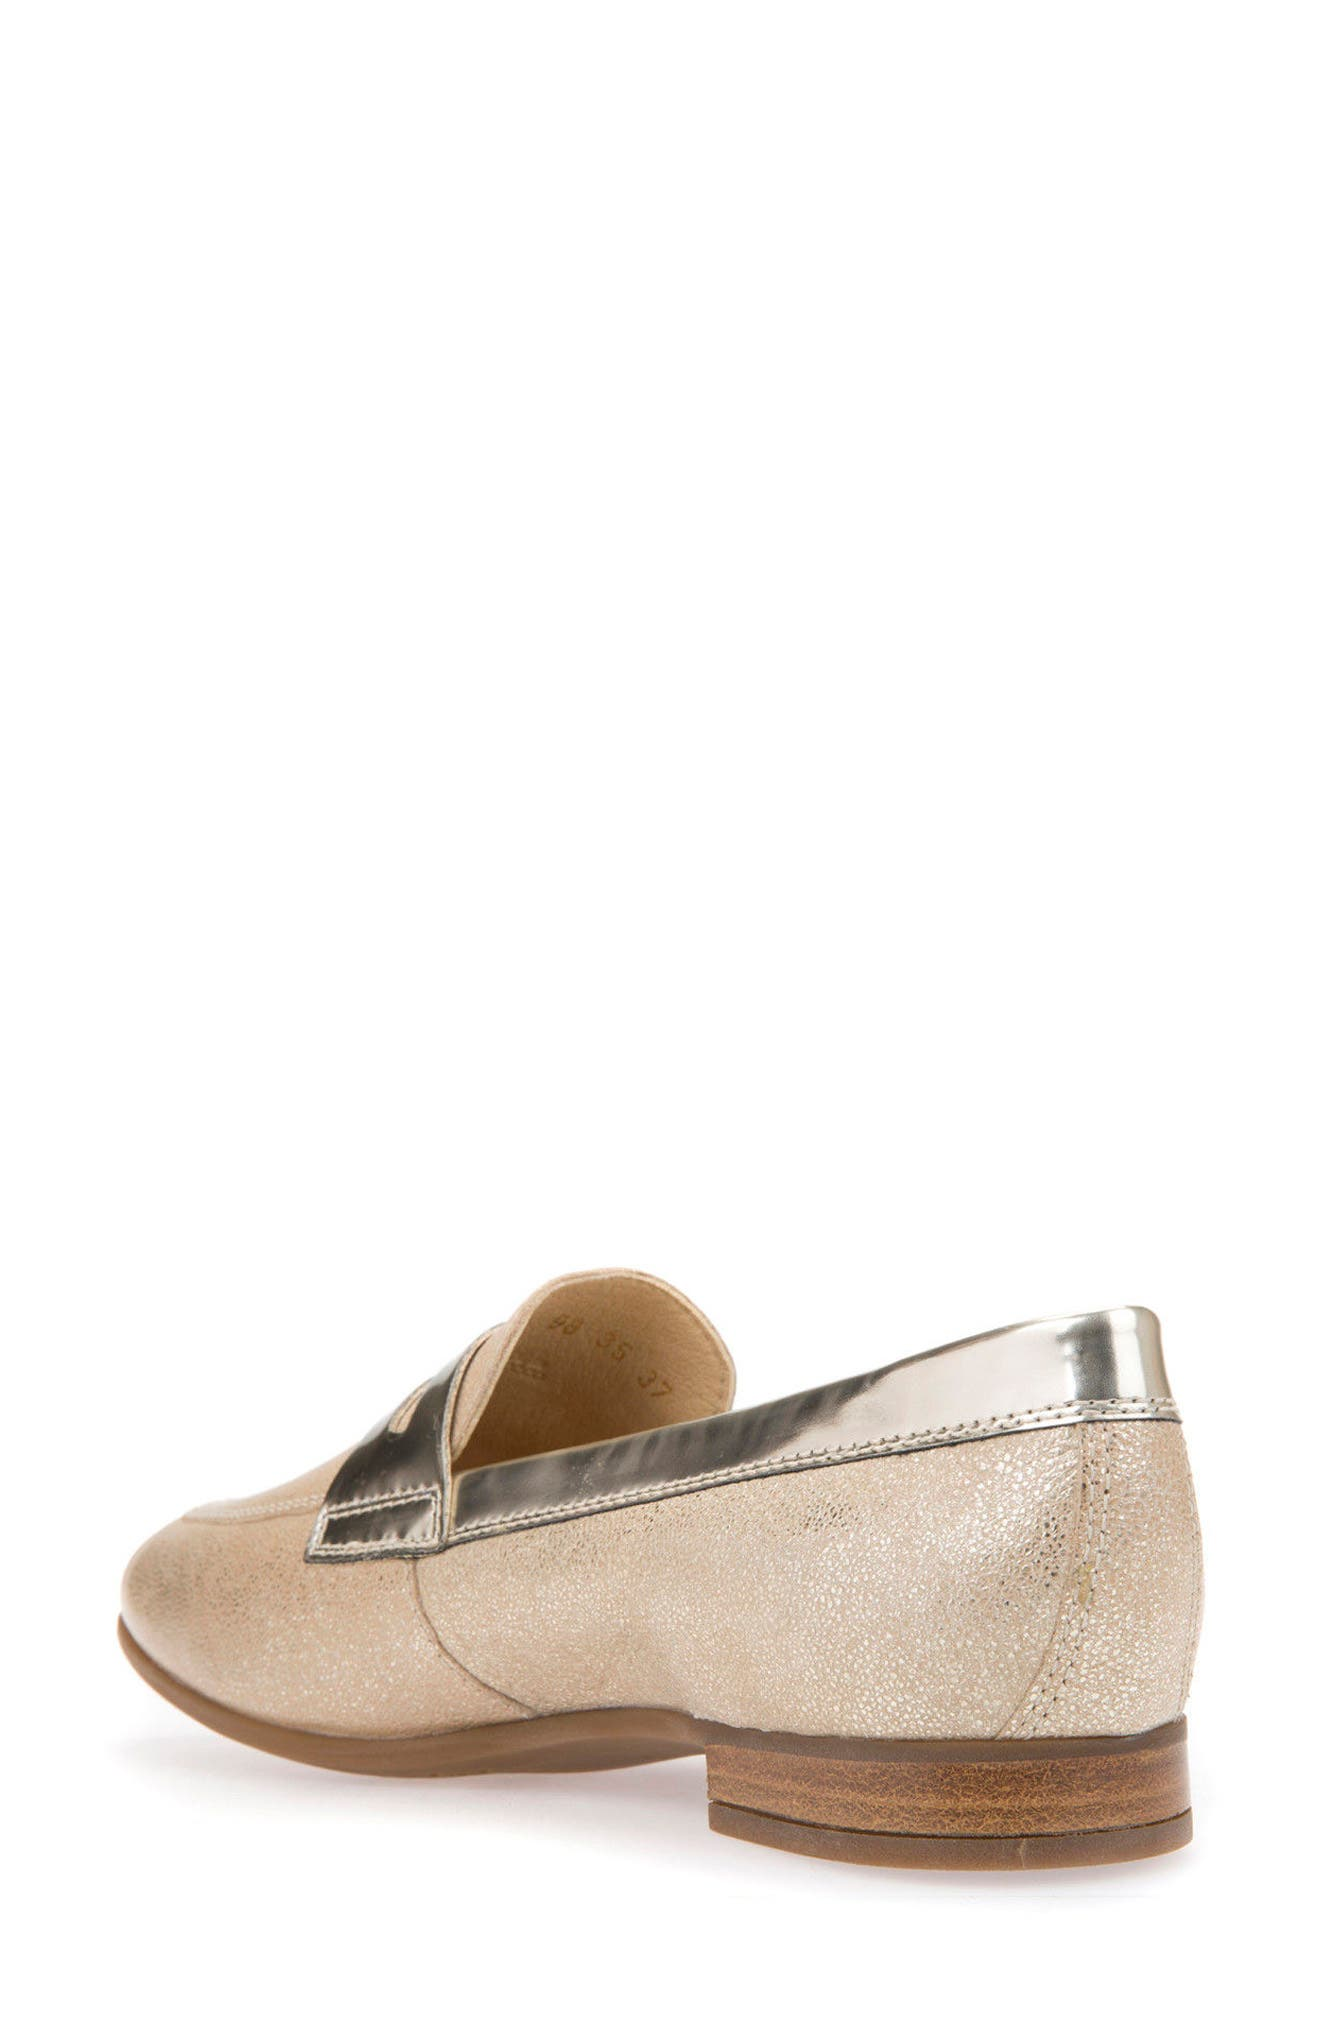 Alternate Image 2  - Geox Marlyna Penny Loafer (Women)